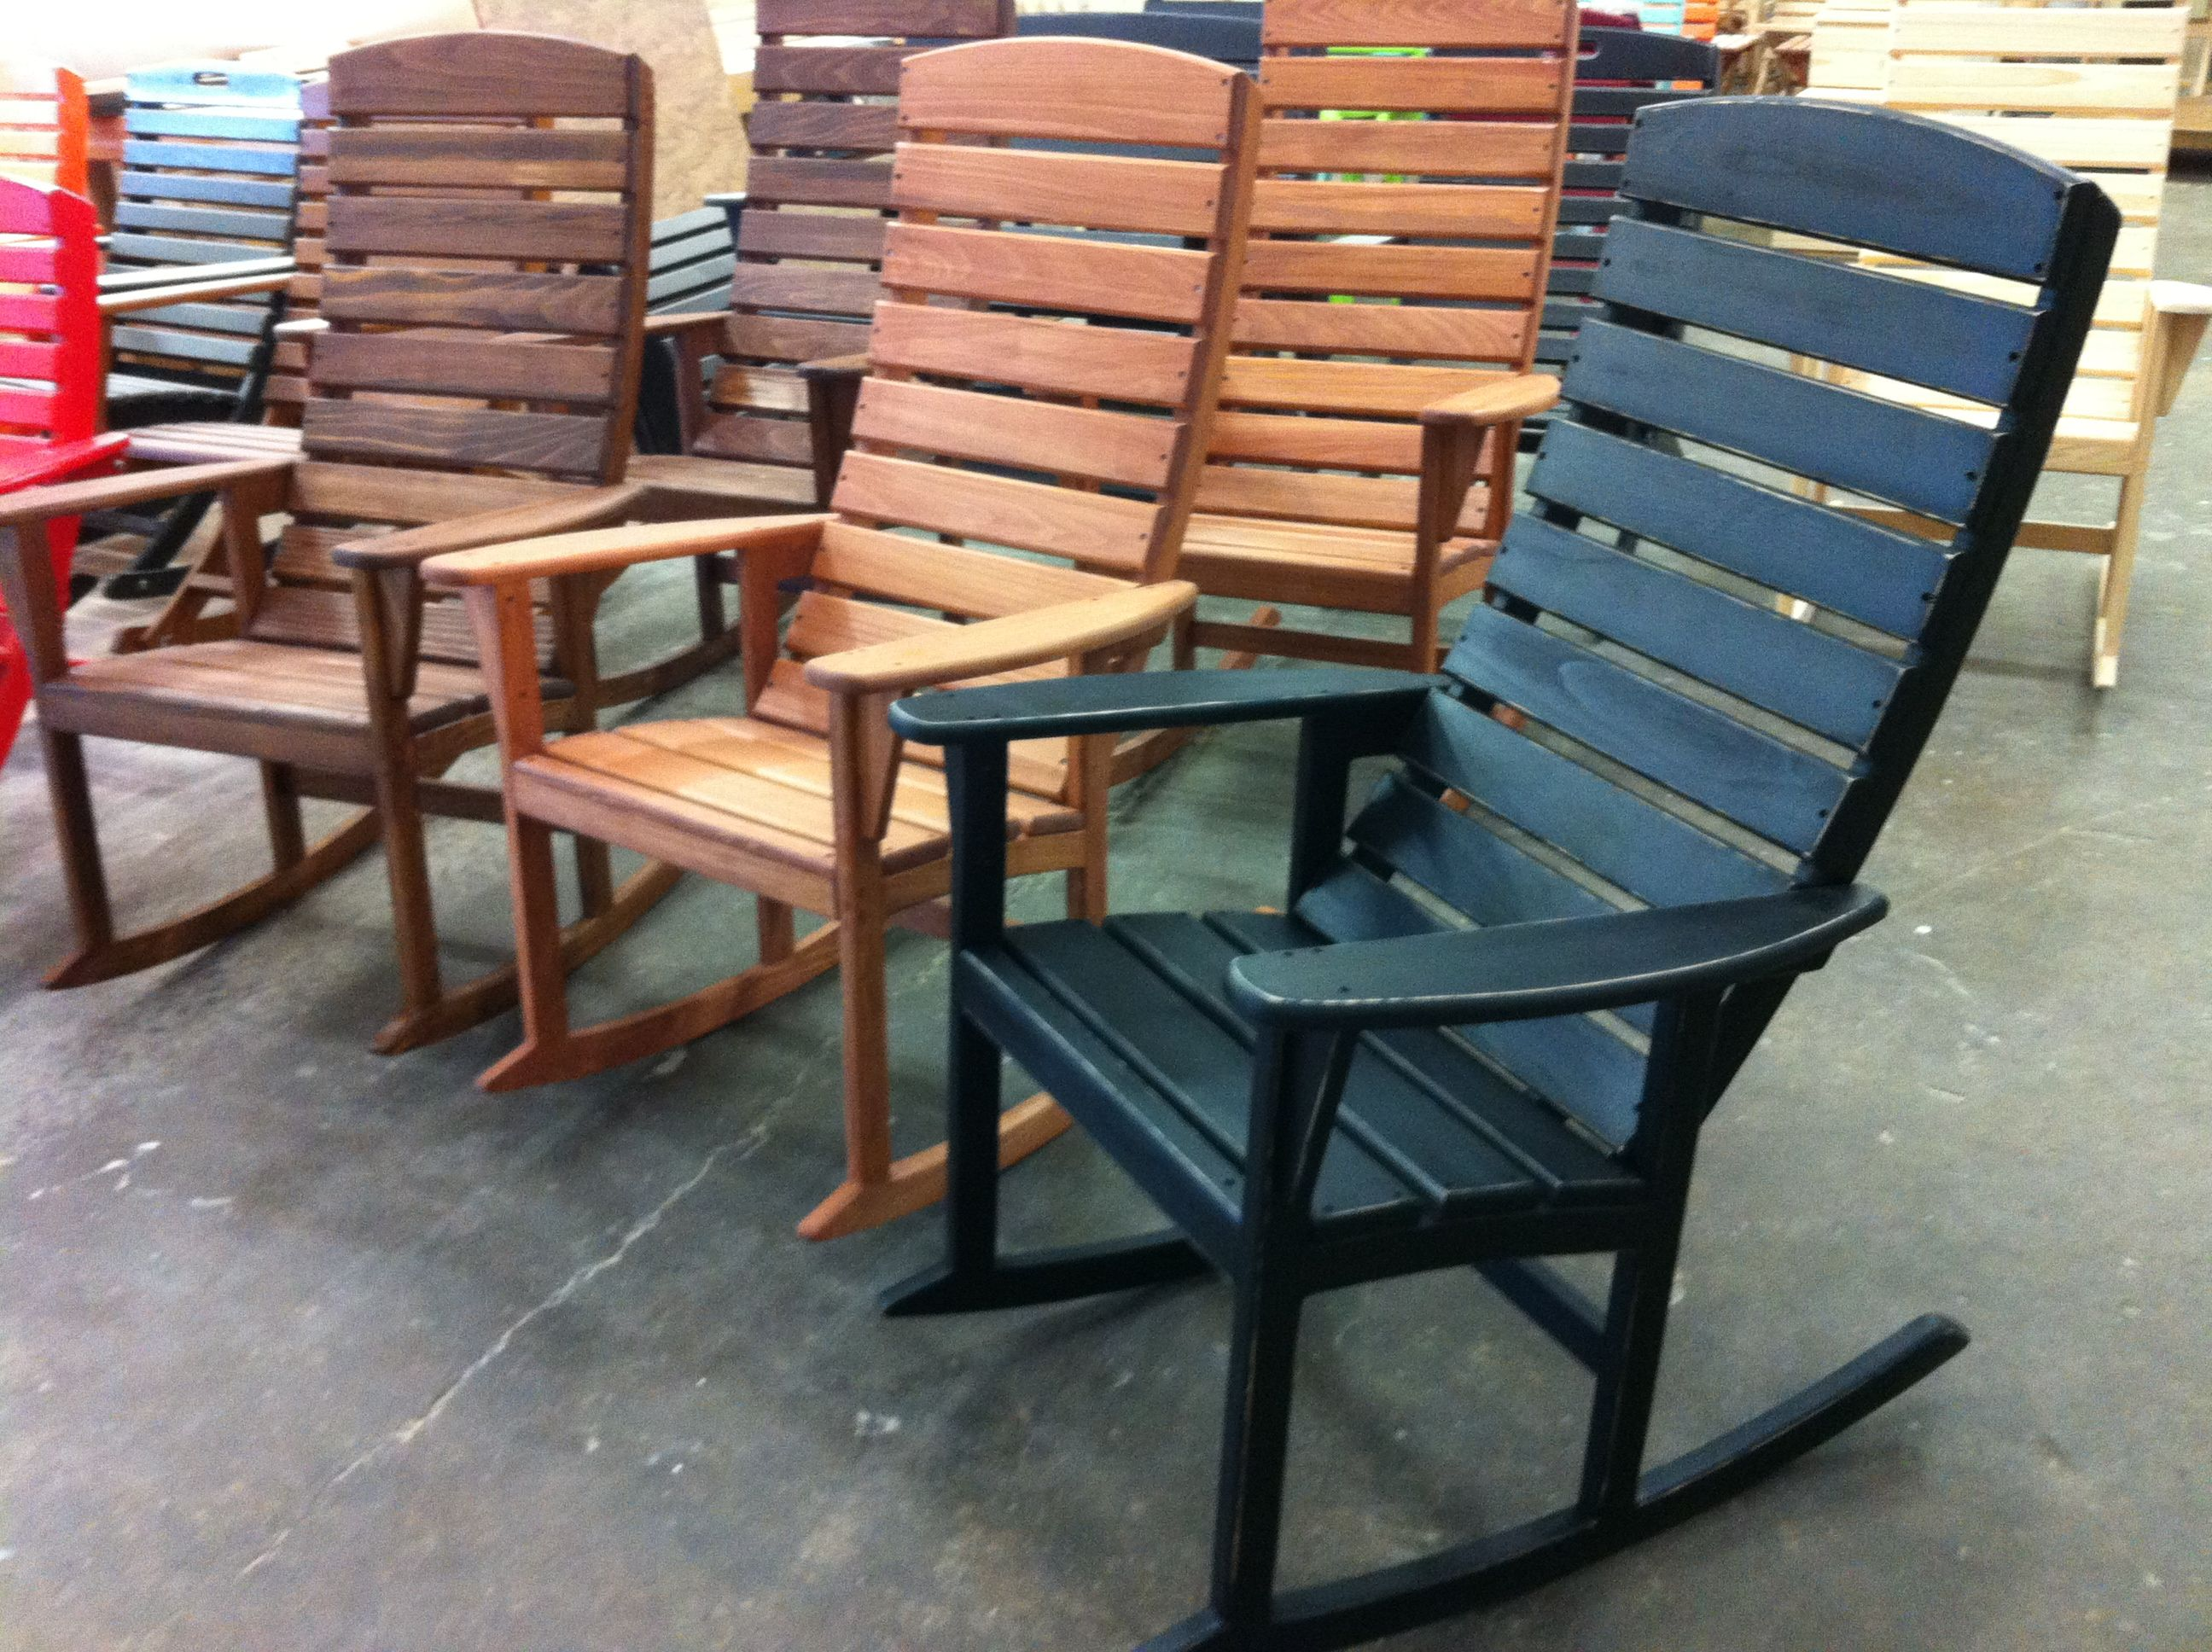 Outstanding Casual Rocker Hand Made In North Carolina Lilyjack Creations Camellatalisay Diy Chair Ideas Camellatalisaycom